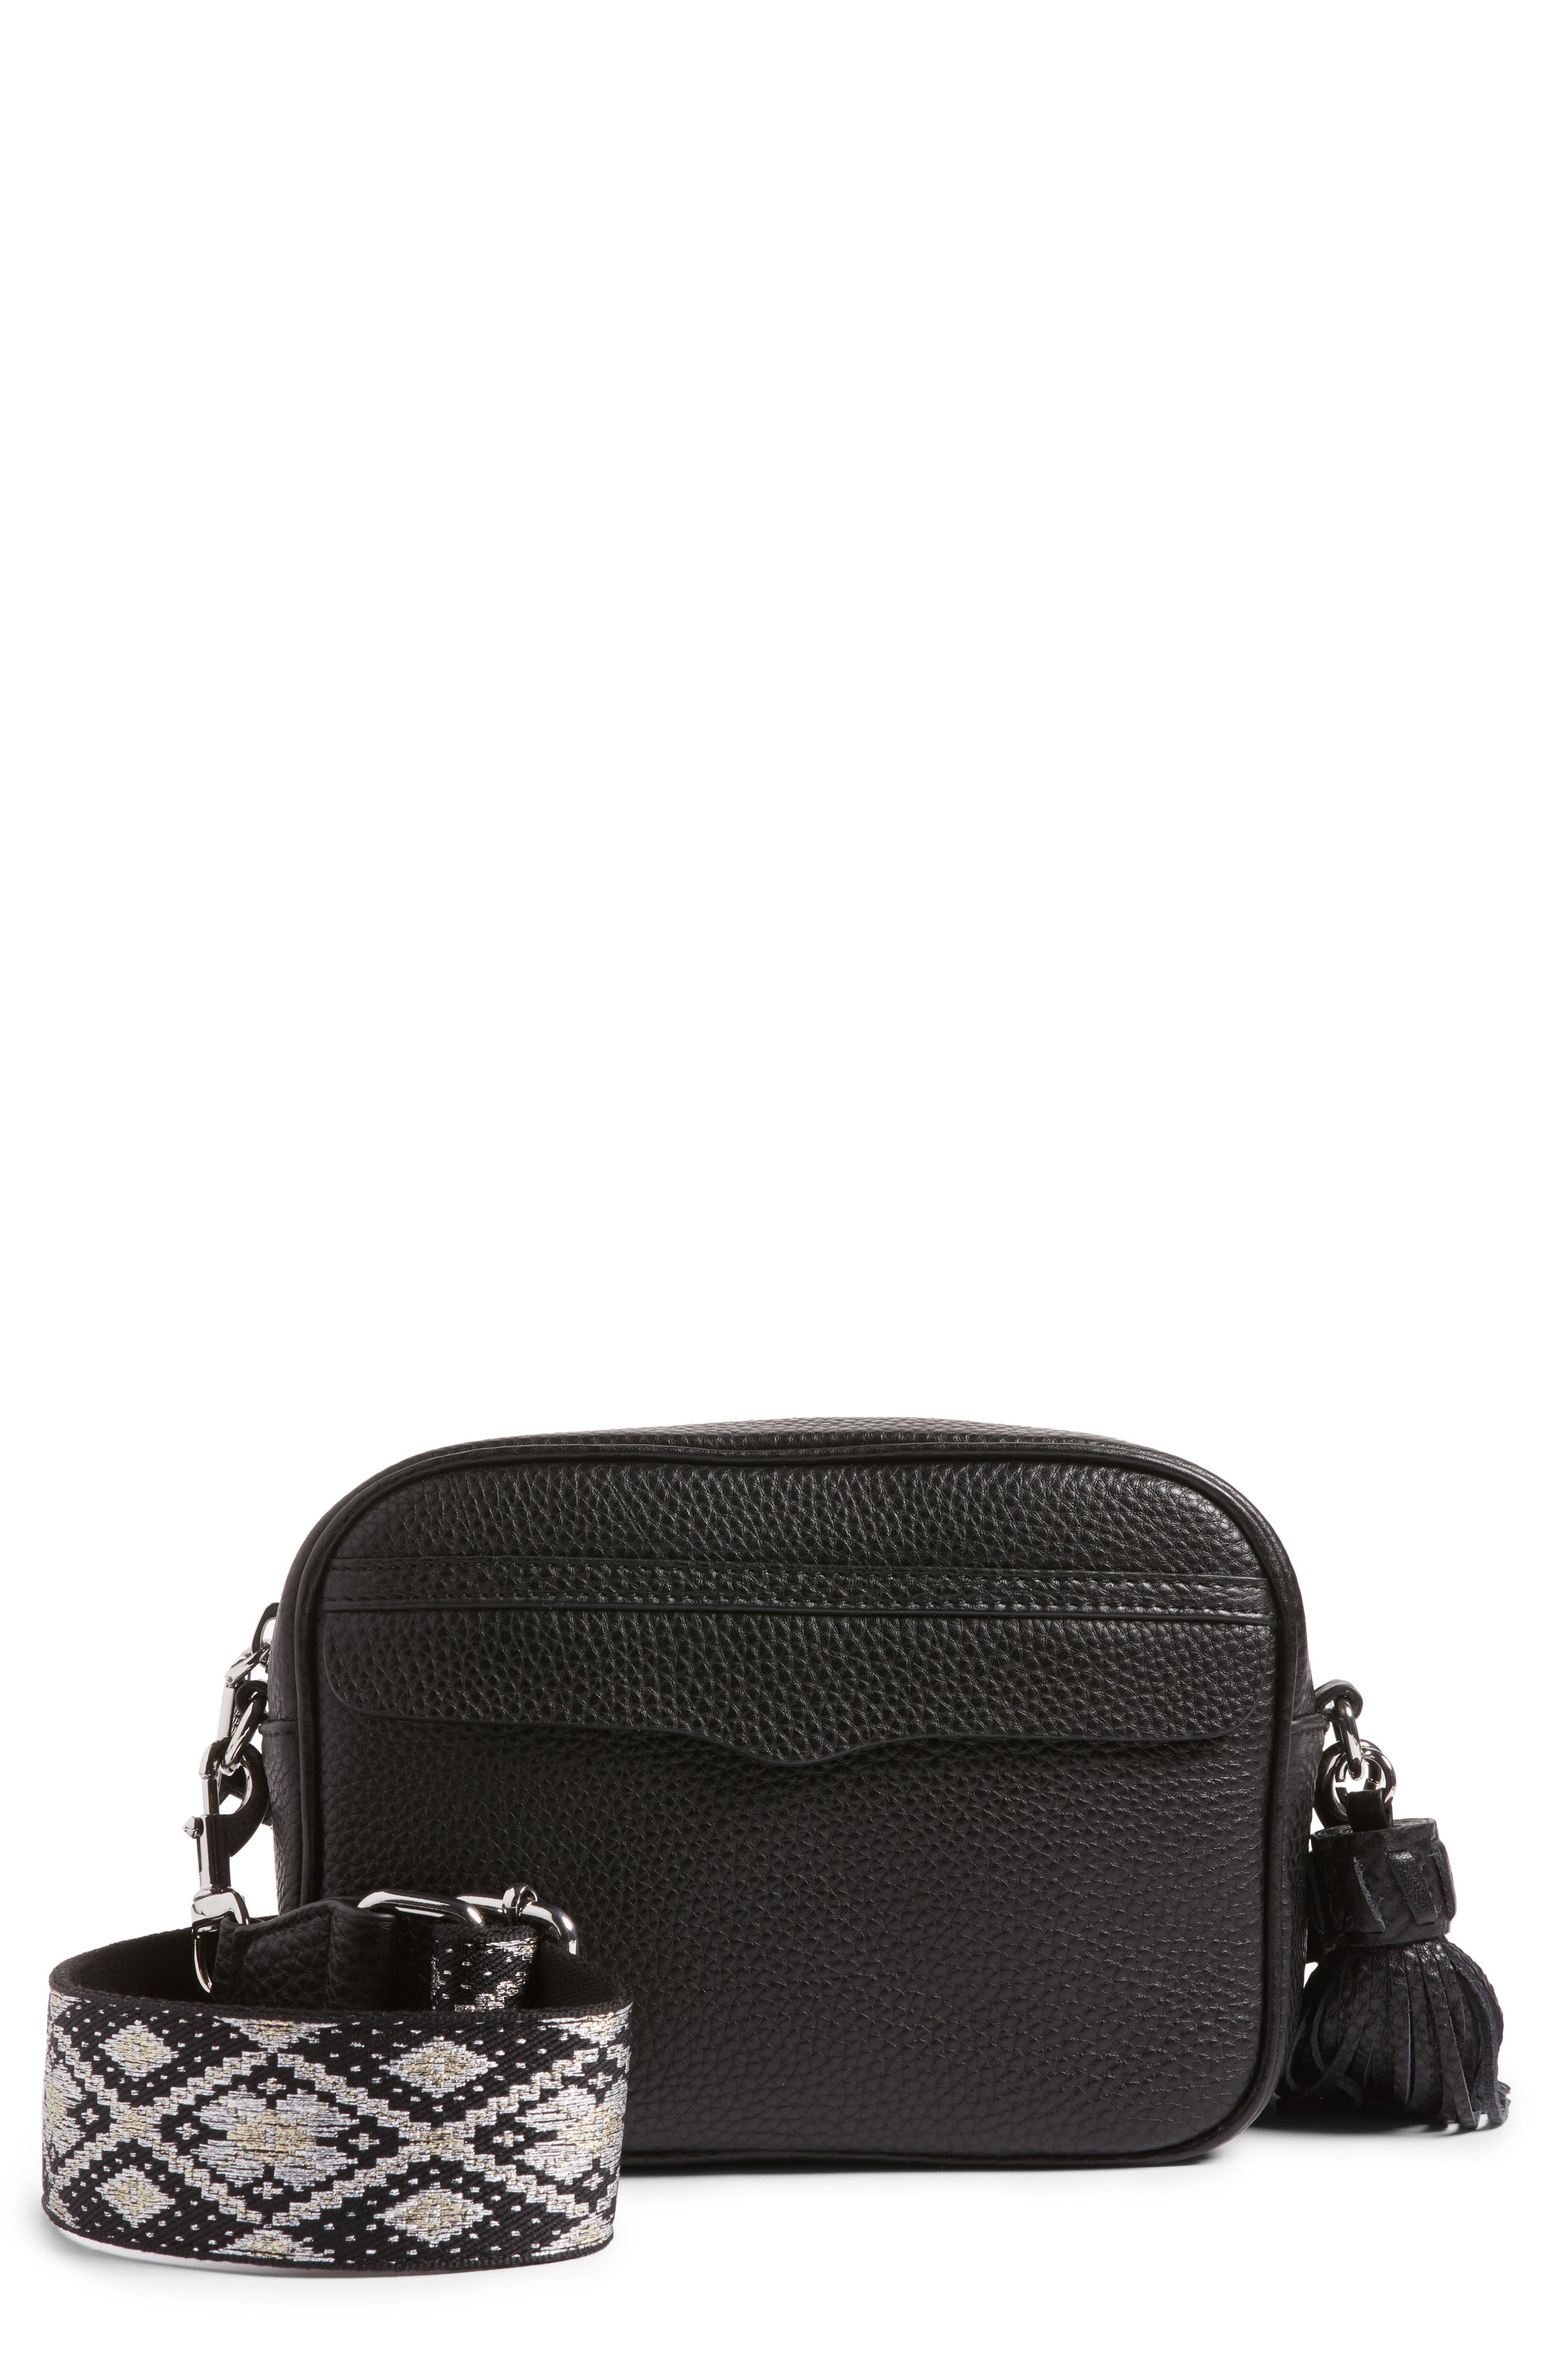 Alternate Image 1 Selected - Rebecca Minkoff Leather Camera Bag with Guitar Strap (Nordstrom Exclusive)